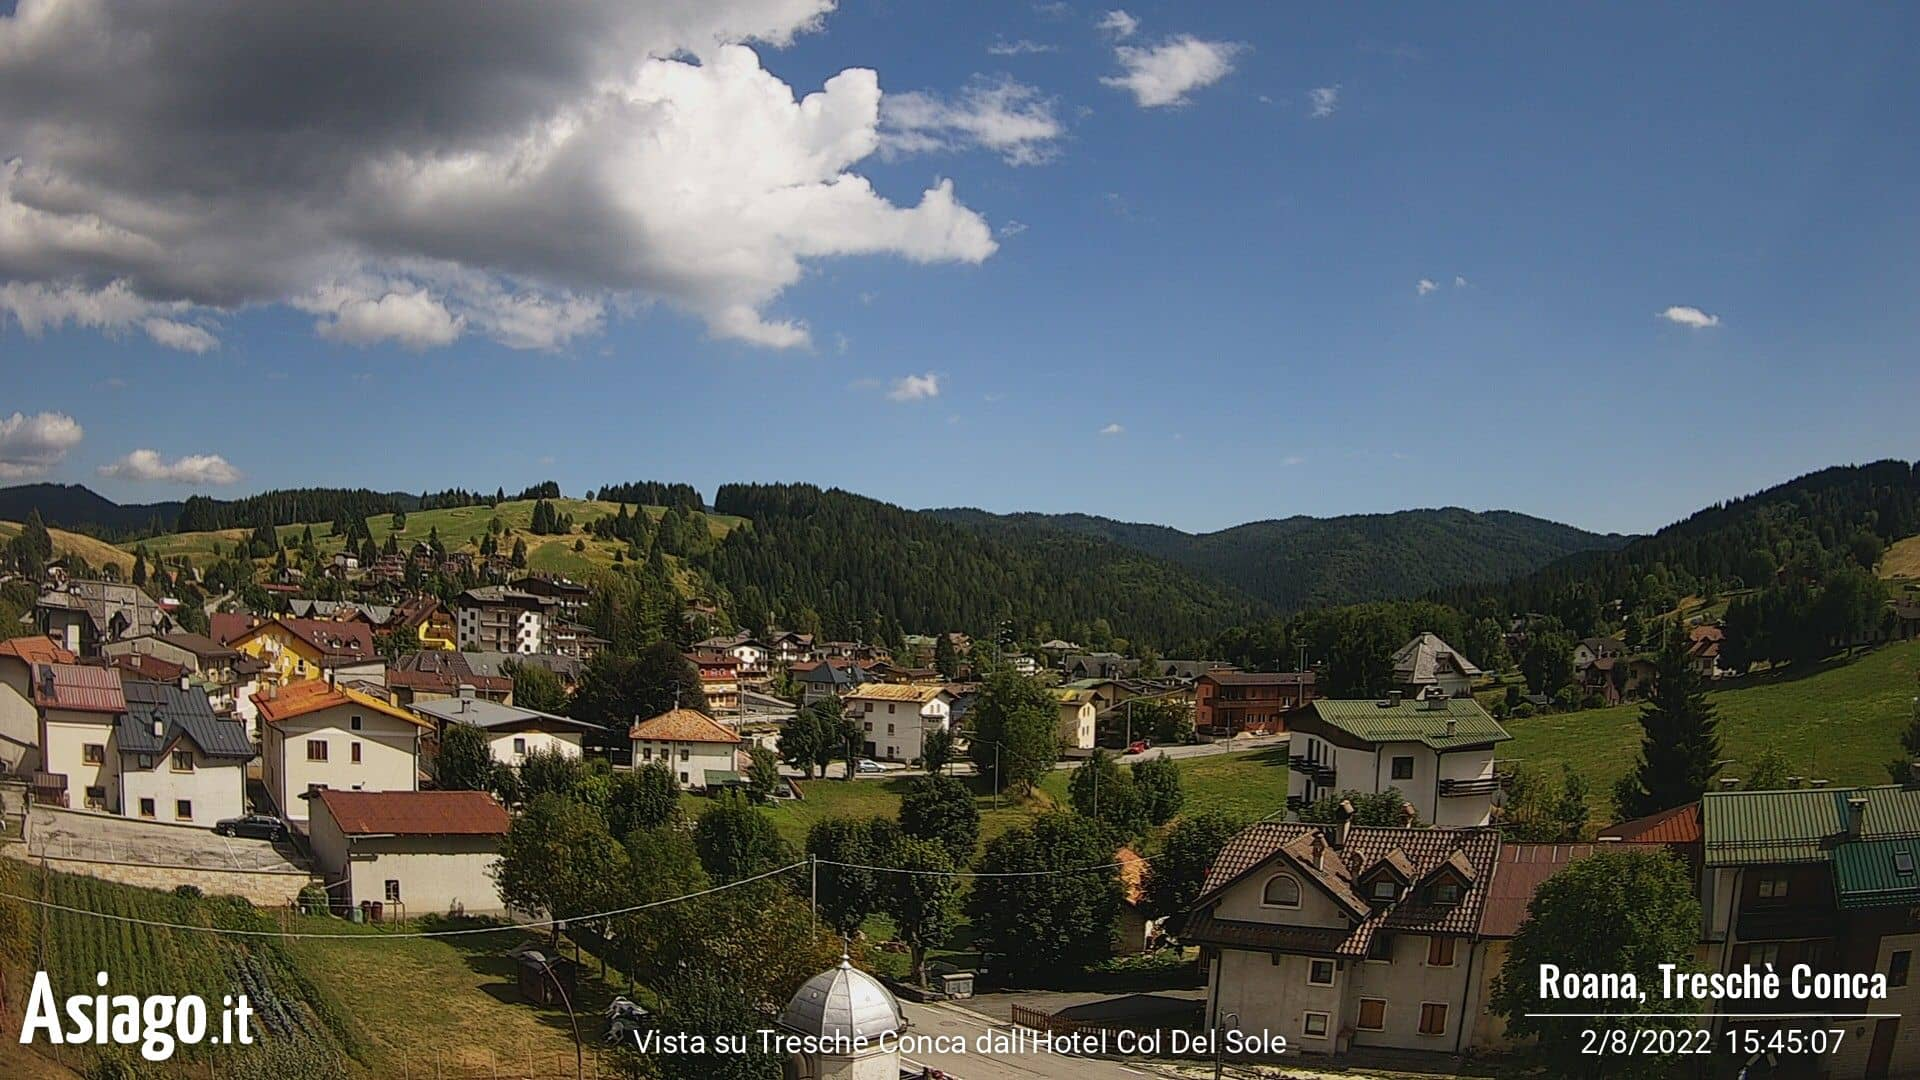 Live-Webcam des Asiago.It aus dem Hotel Col del Sole